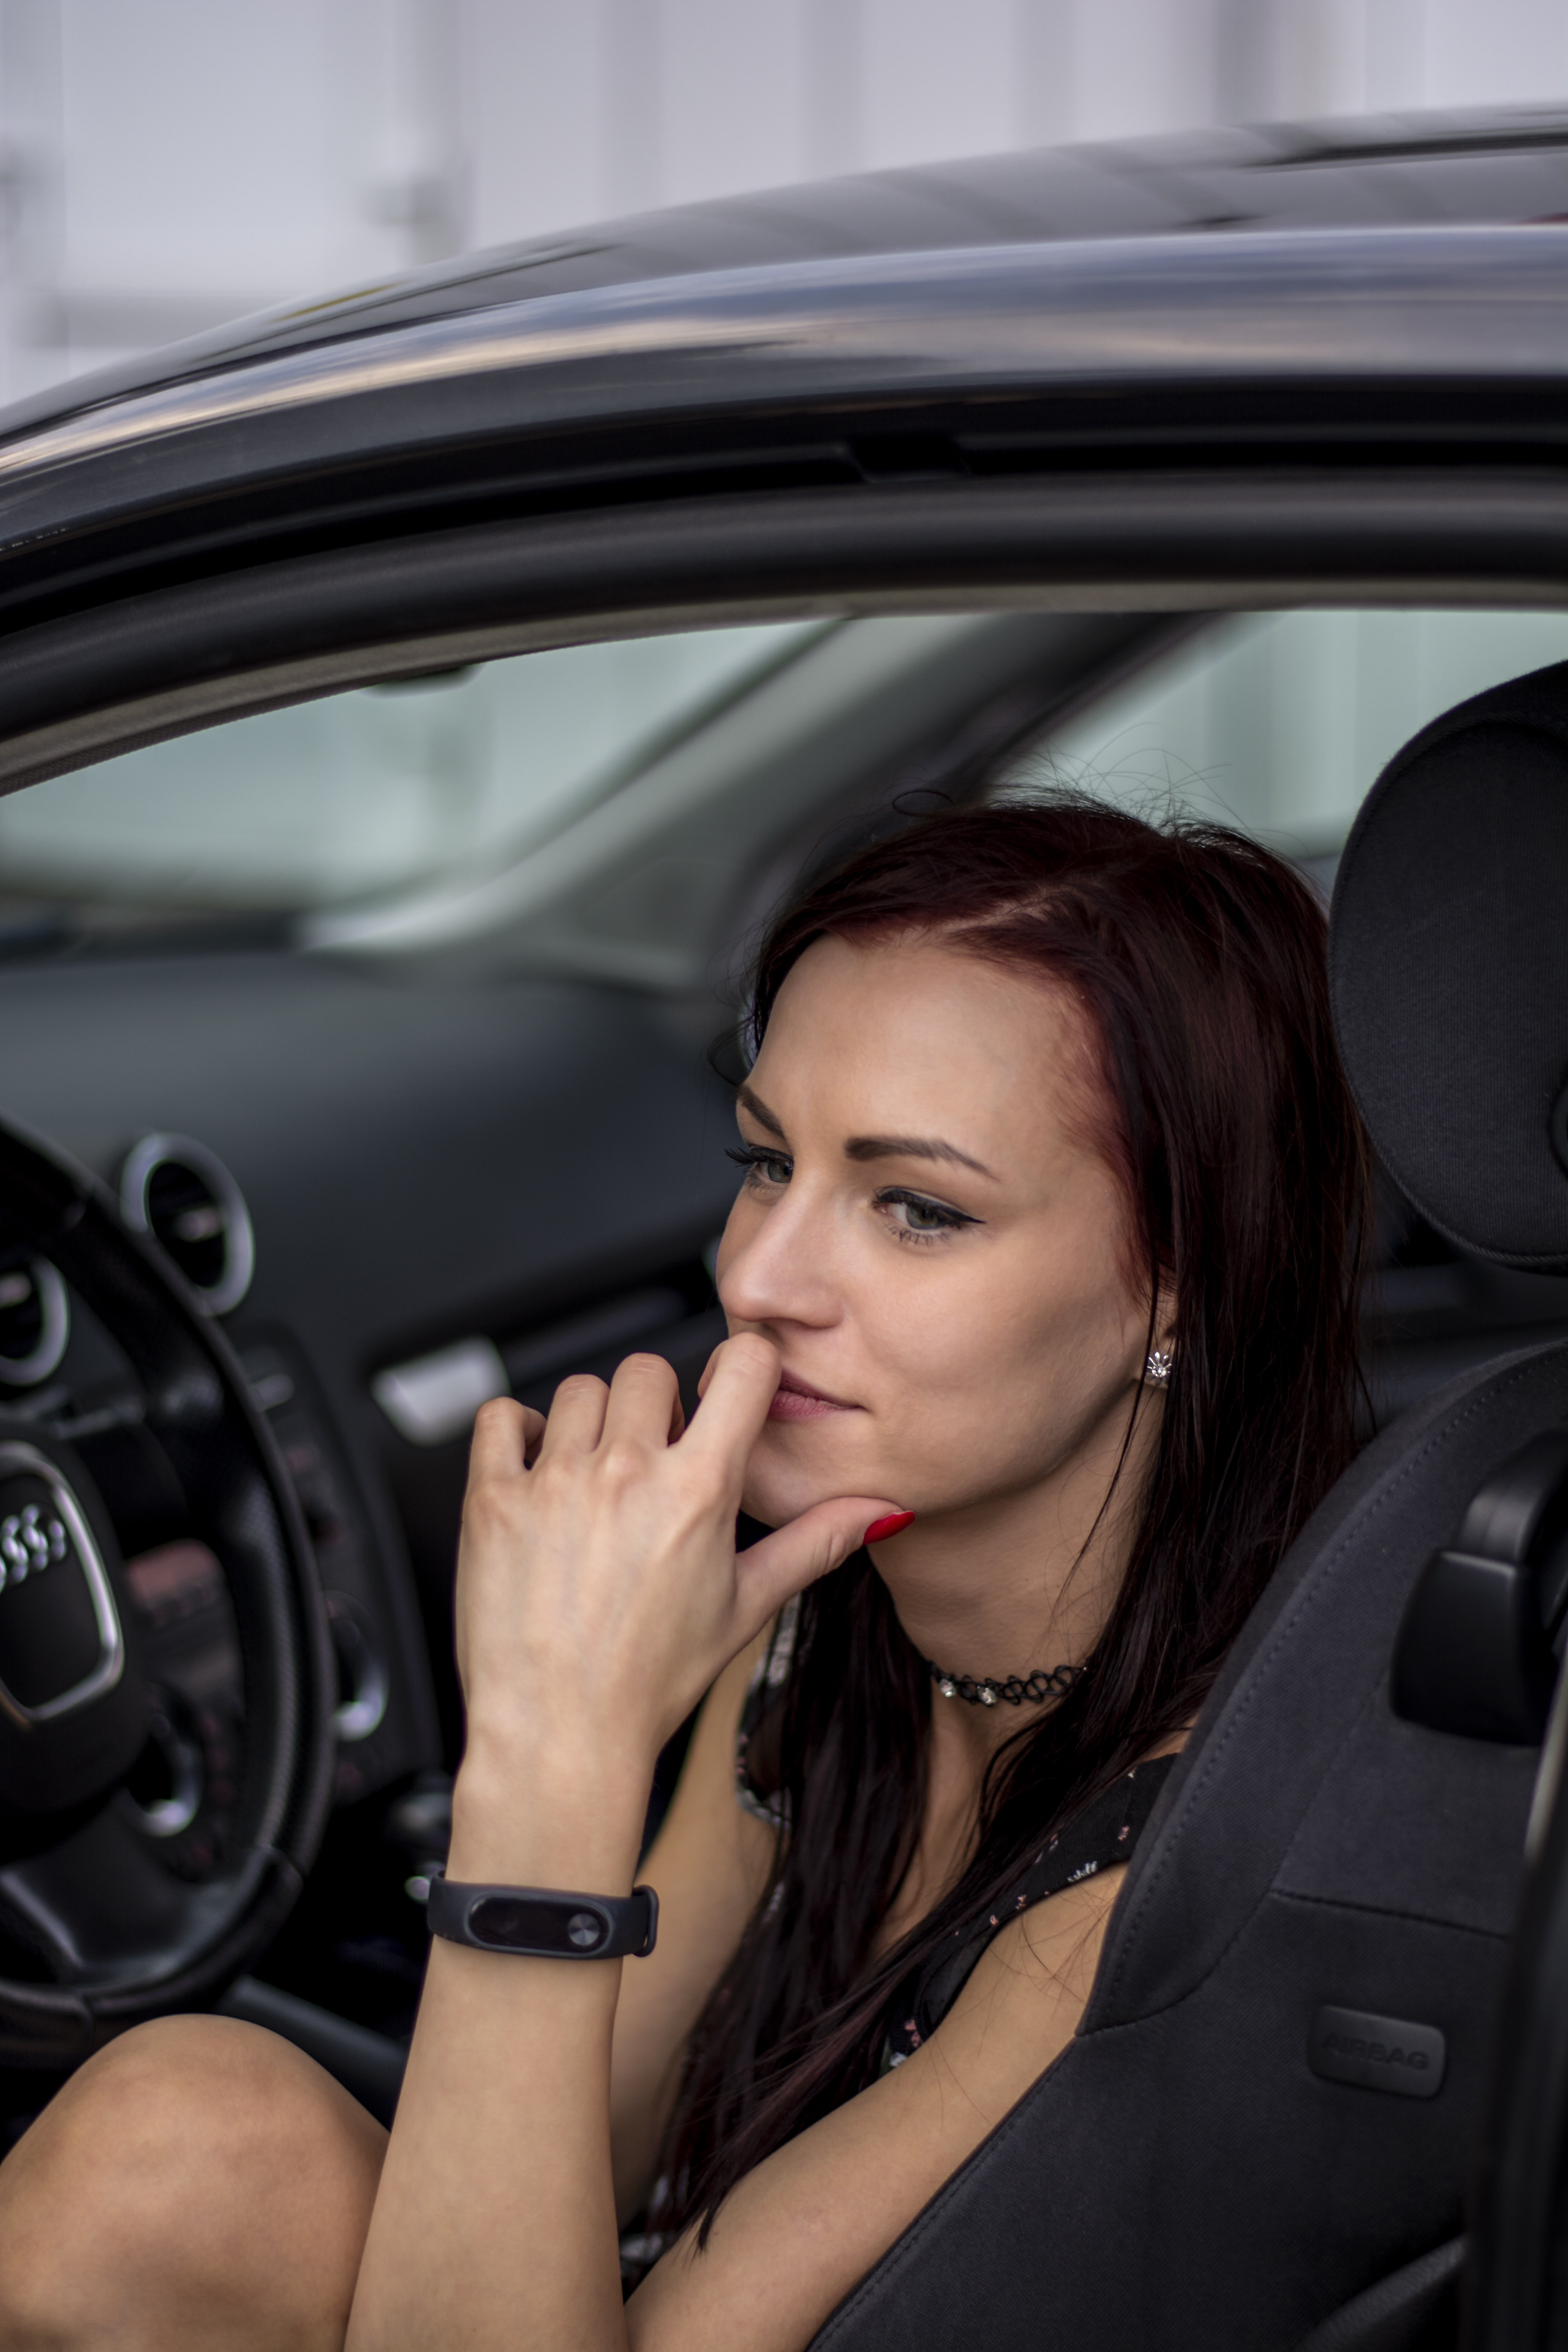 selective focus photo of woman sitting front of vehicle steering wheel